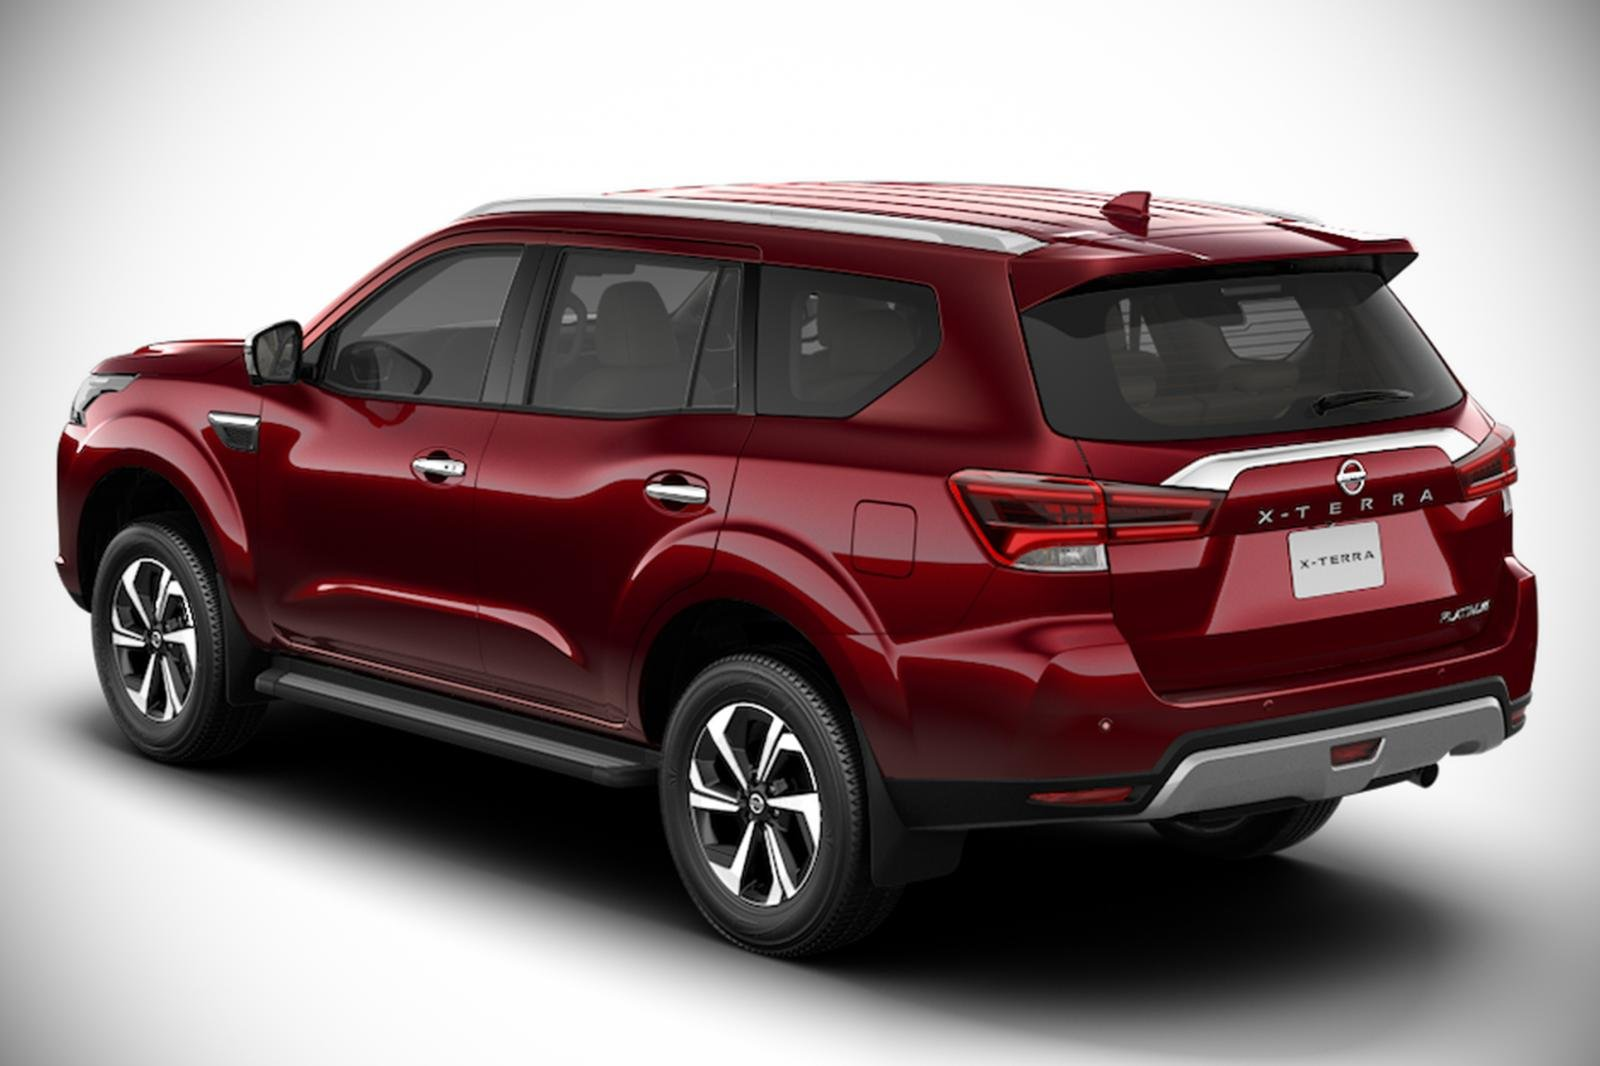 A Picture of the rear of the facelifted Terra